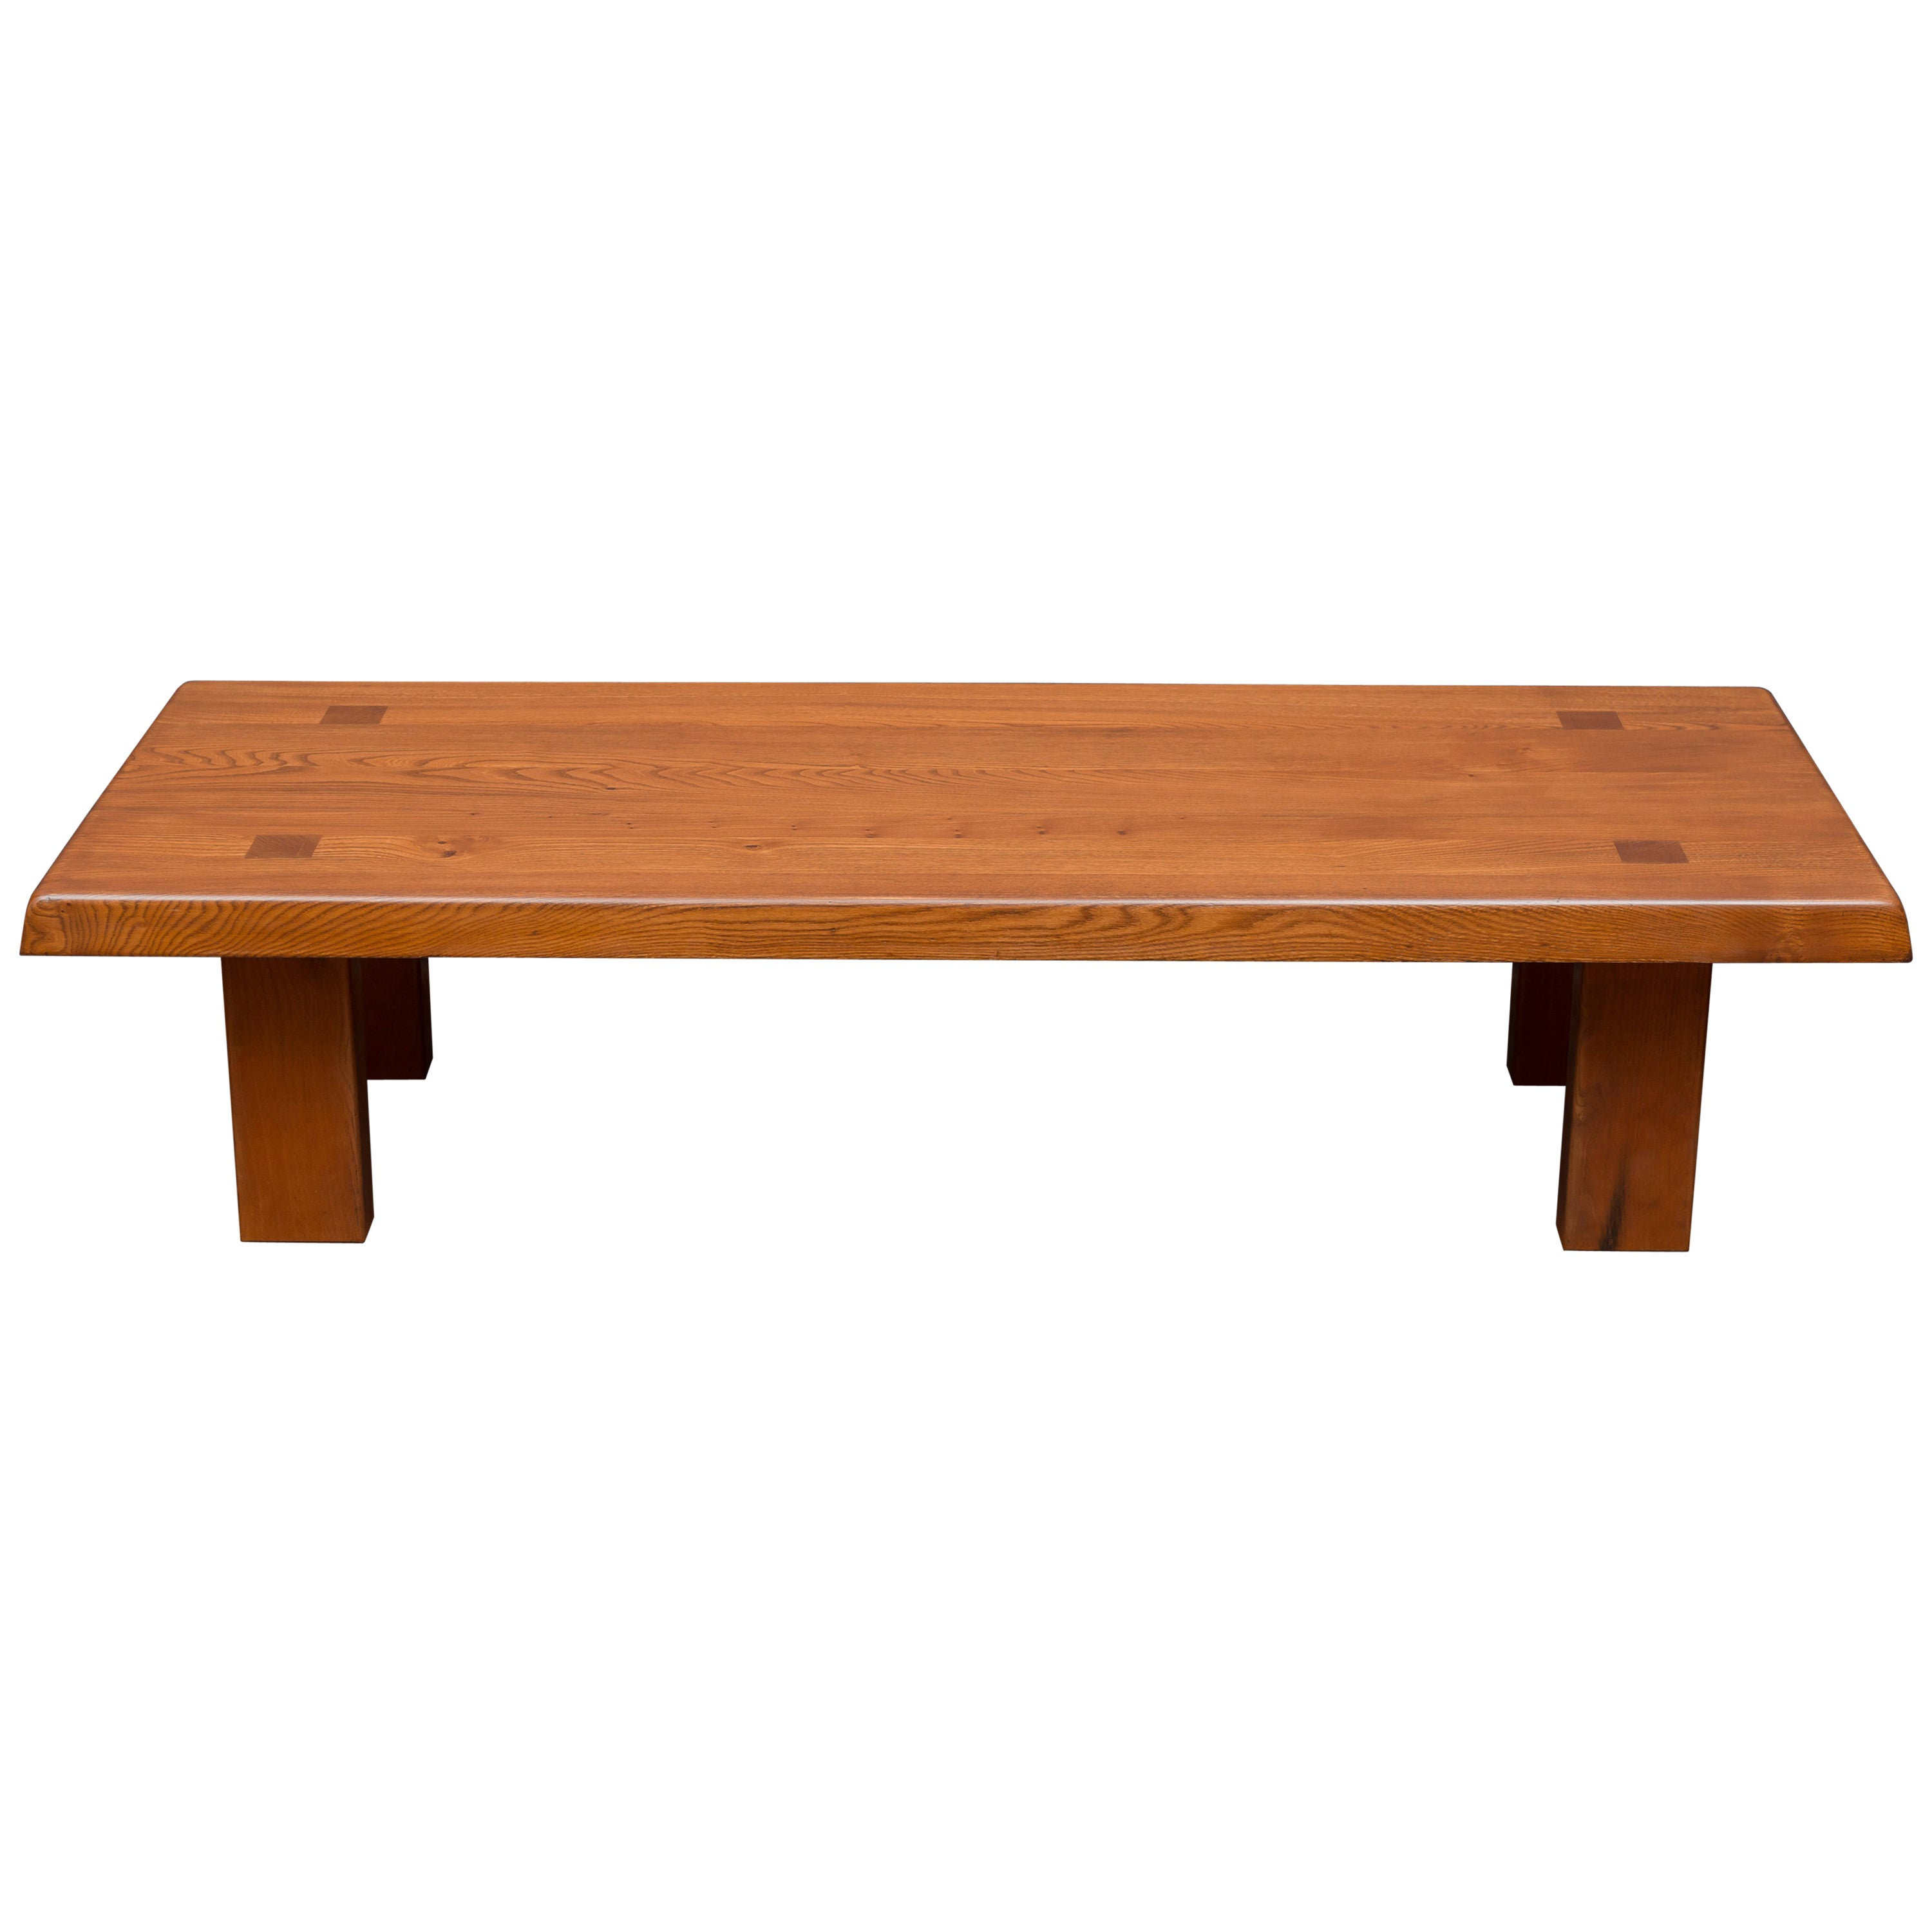 Pierre Chapo French Elm Coffee Table